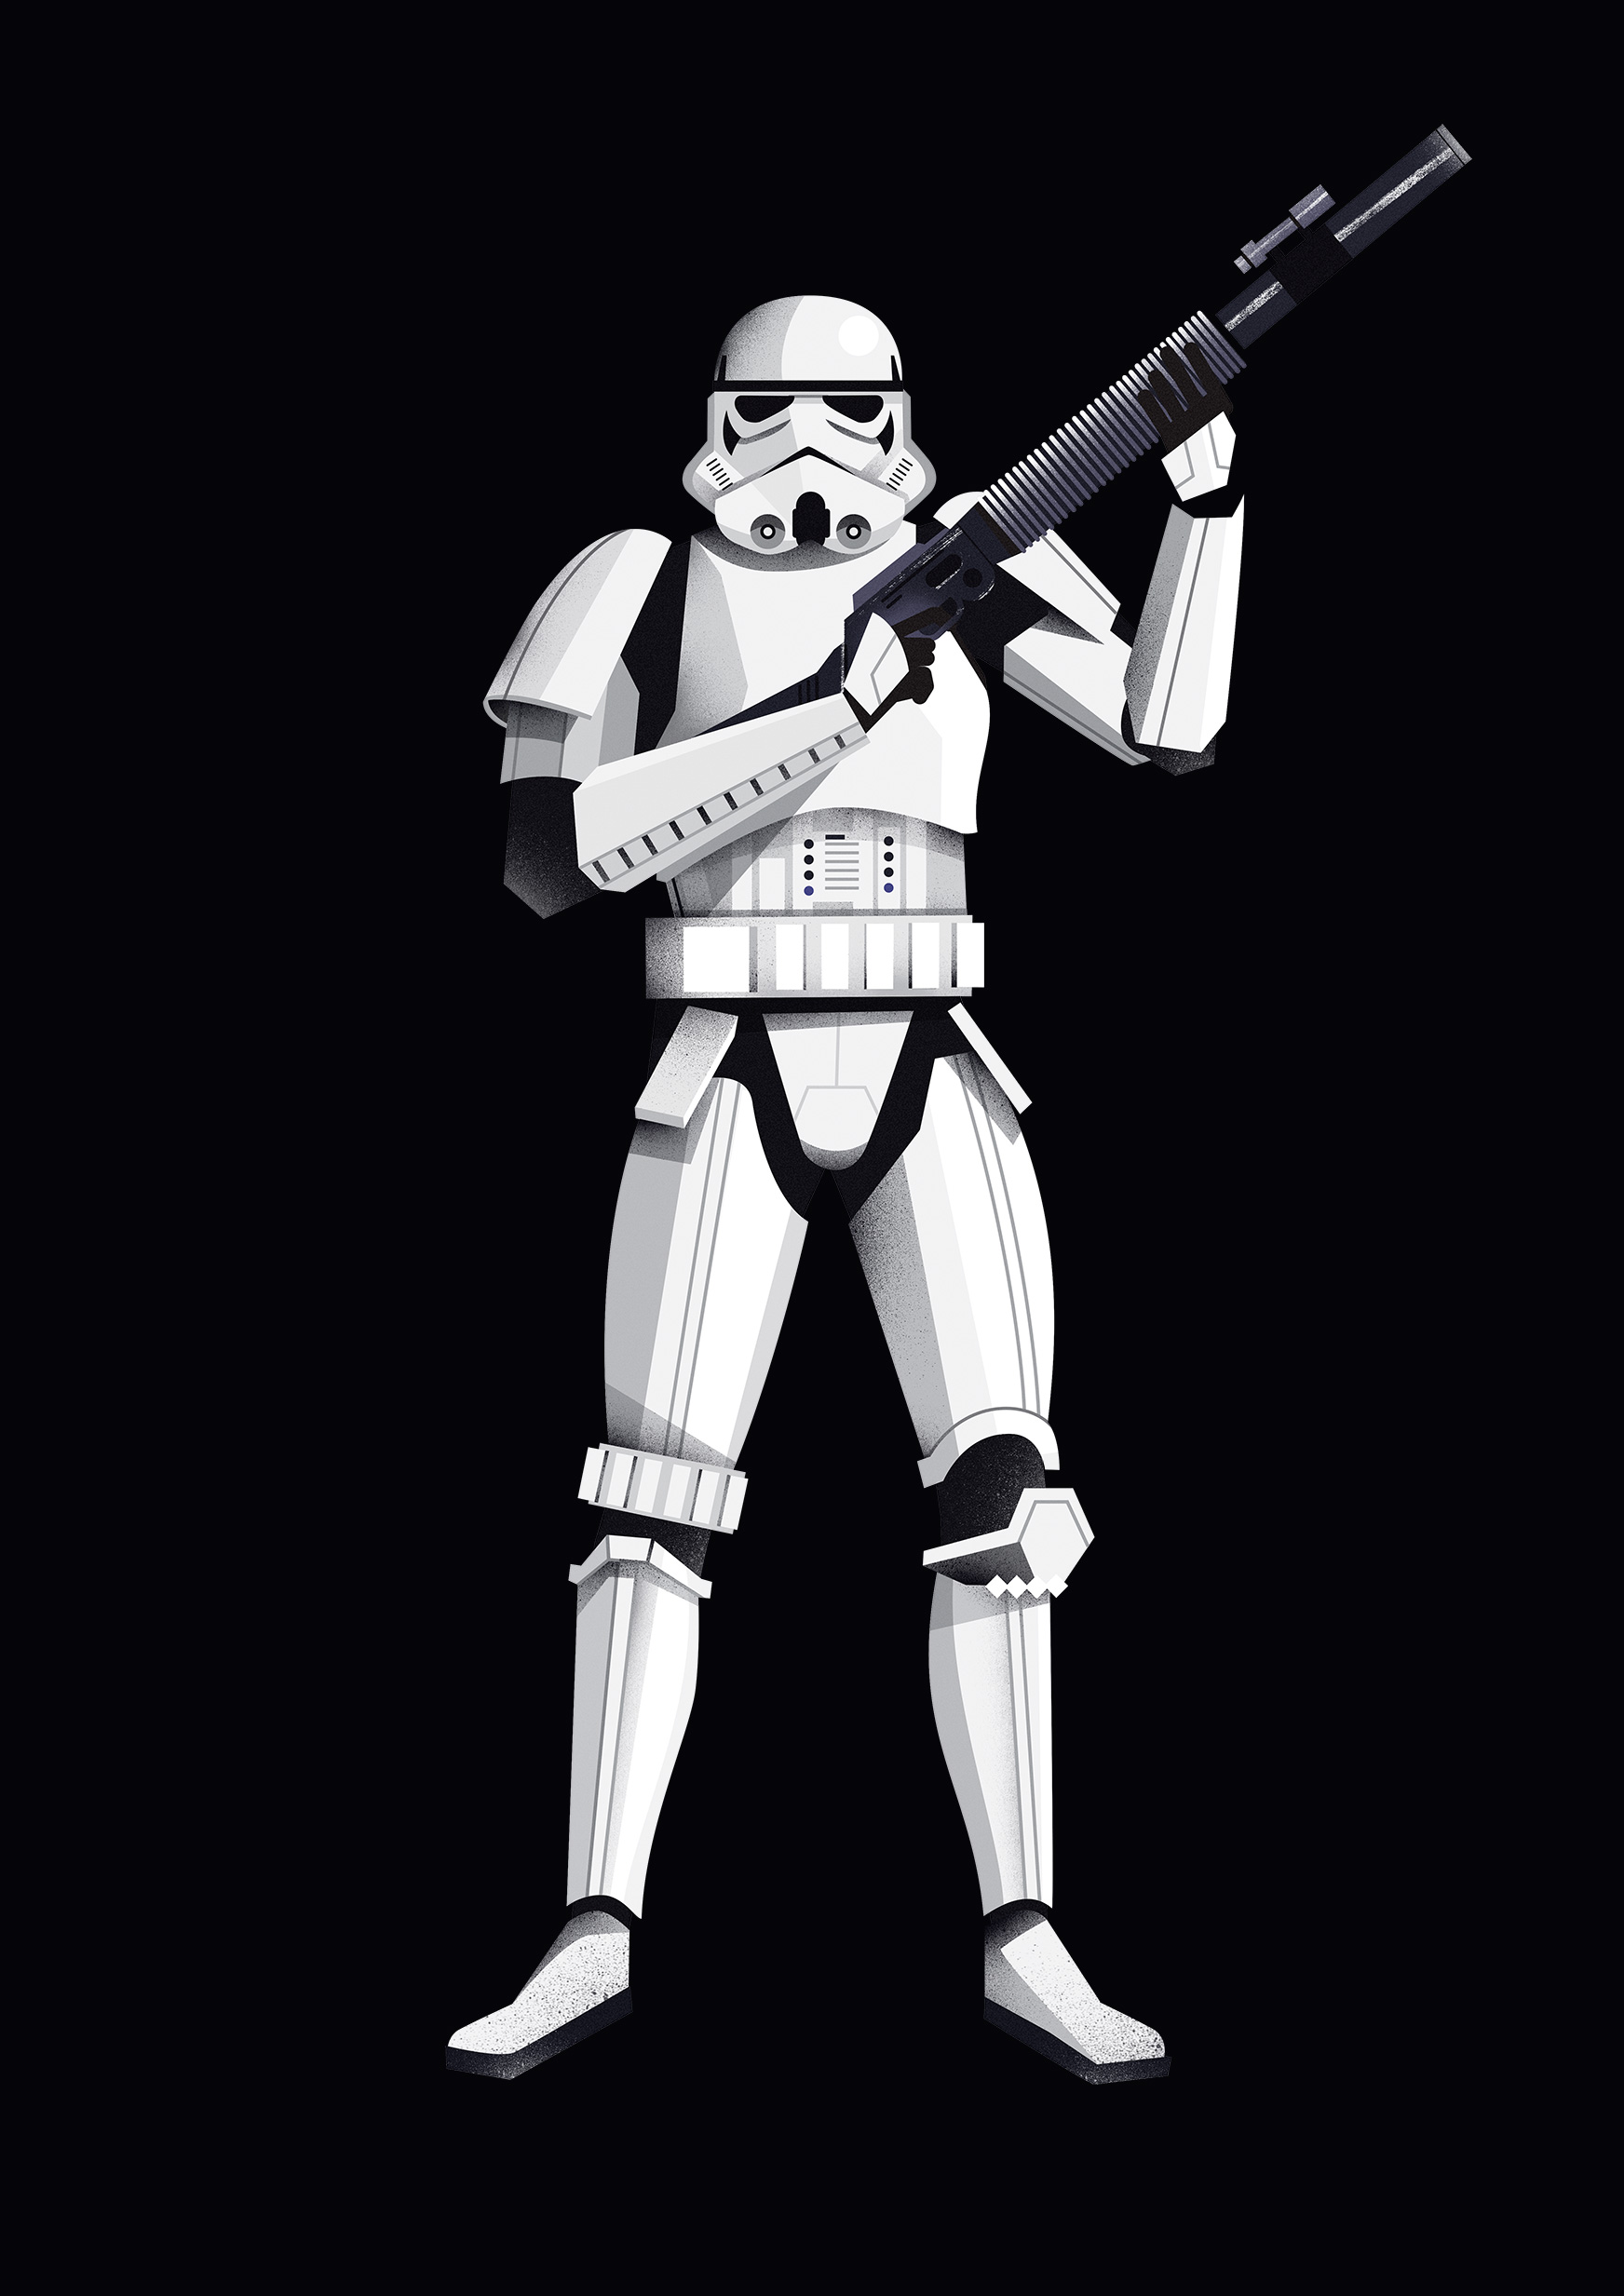 freelance illustrator dale edwin murray star wars rogue one disney complex illustration stormtrooper